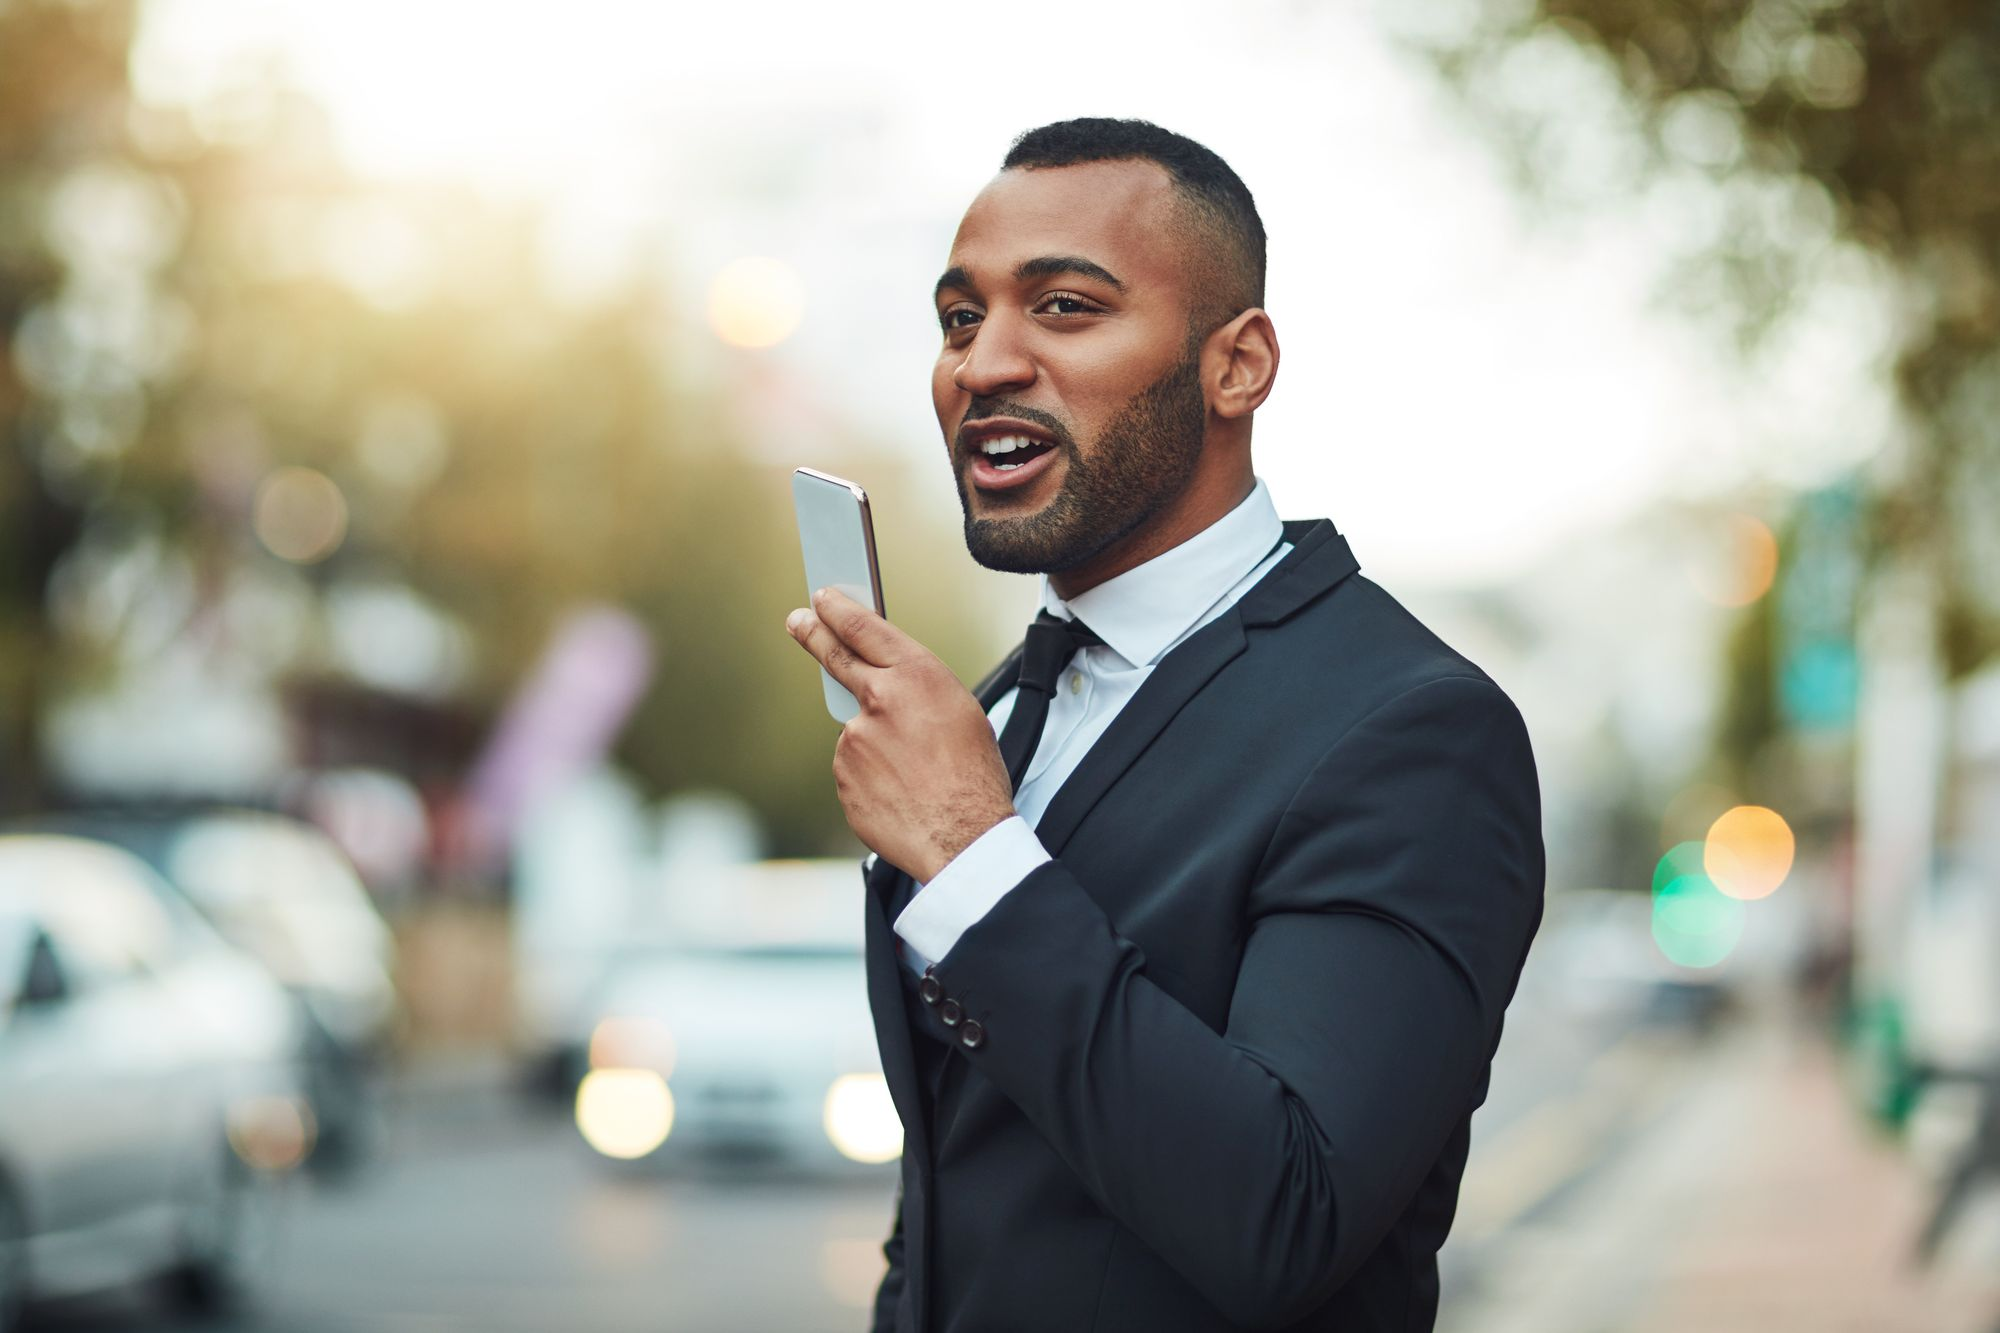 5 Tips to Help Marketers Win in What's Shaping up to Be the Future: Voice Search